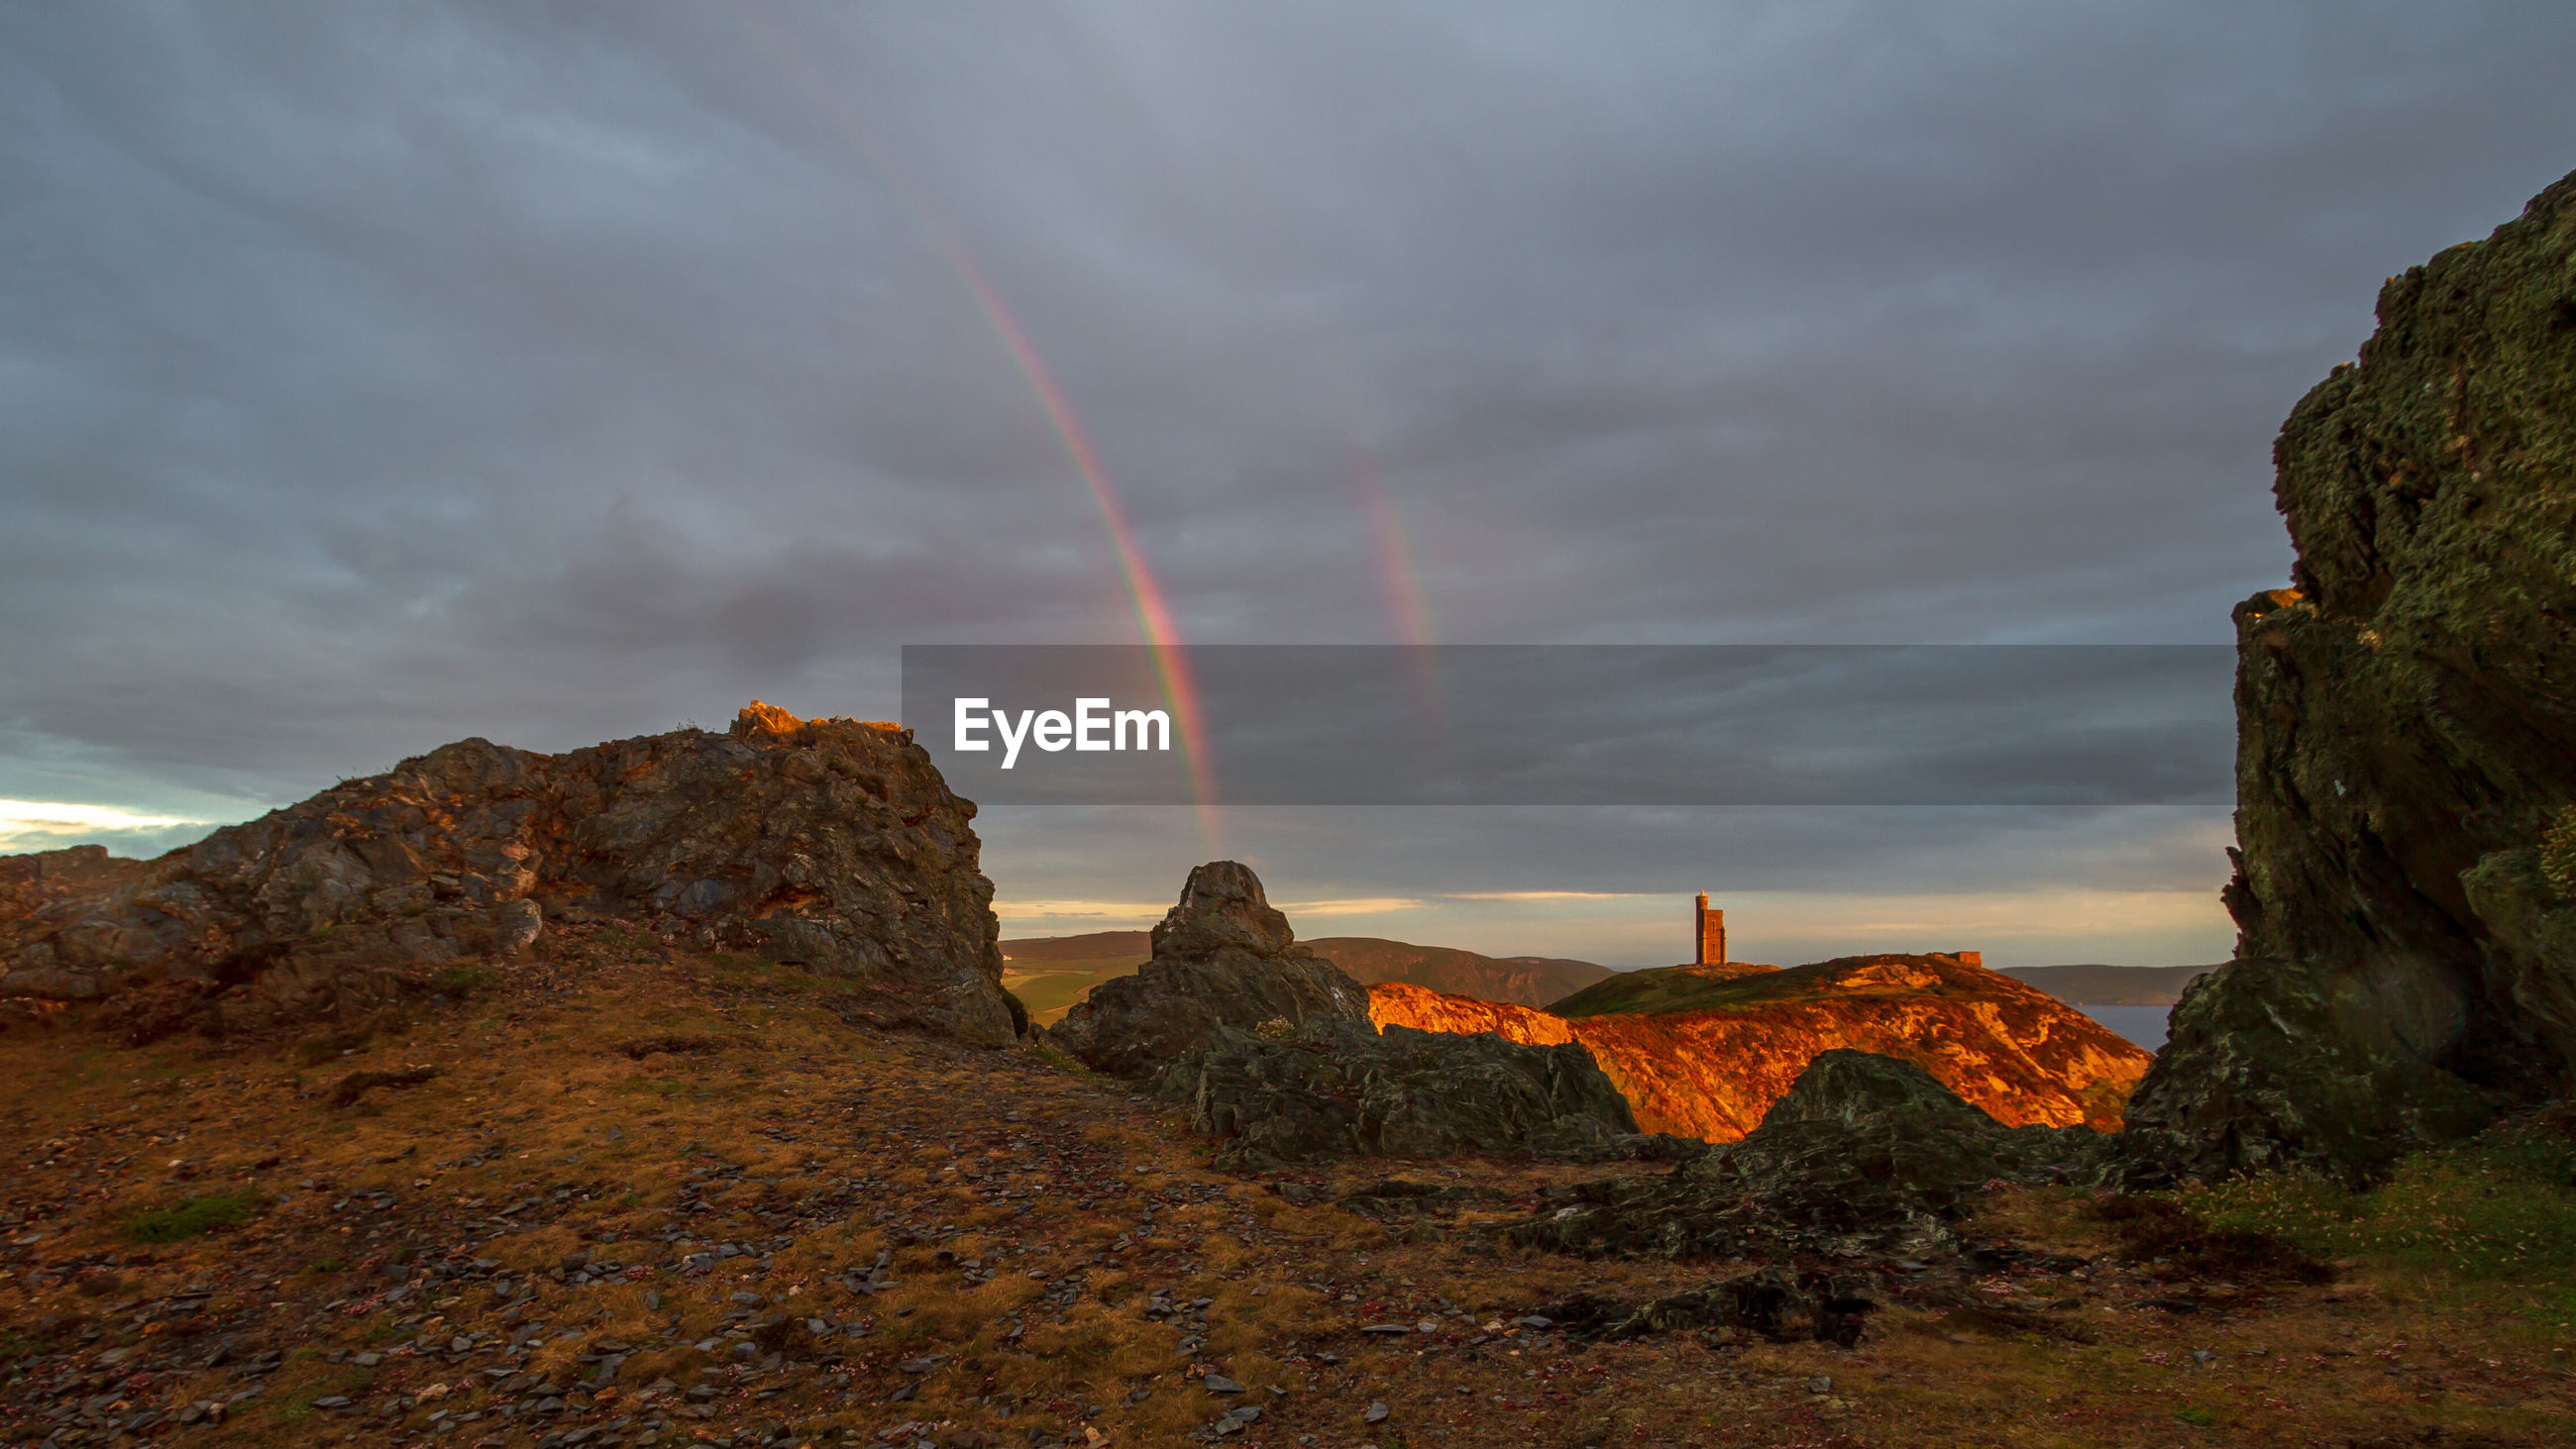 SCENIC VIEW OF RAINBOW OVER ROCKS AGAINST SKY